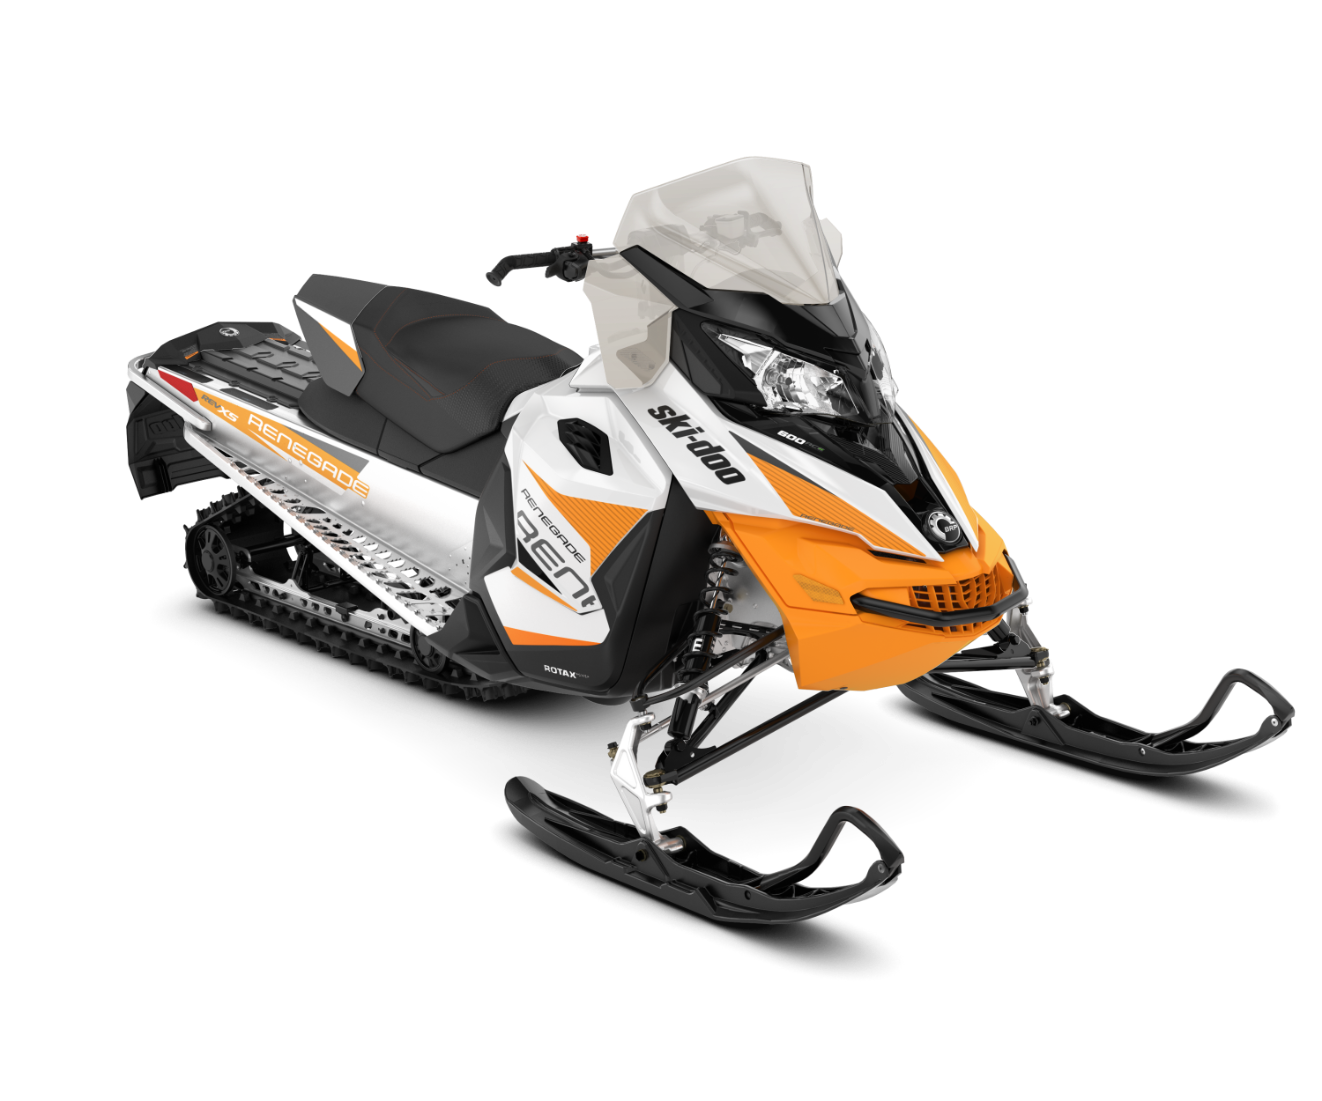 2019 Ski-Doo Renegade Sport 600 ACE in Eugene, Oregon